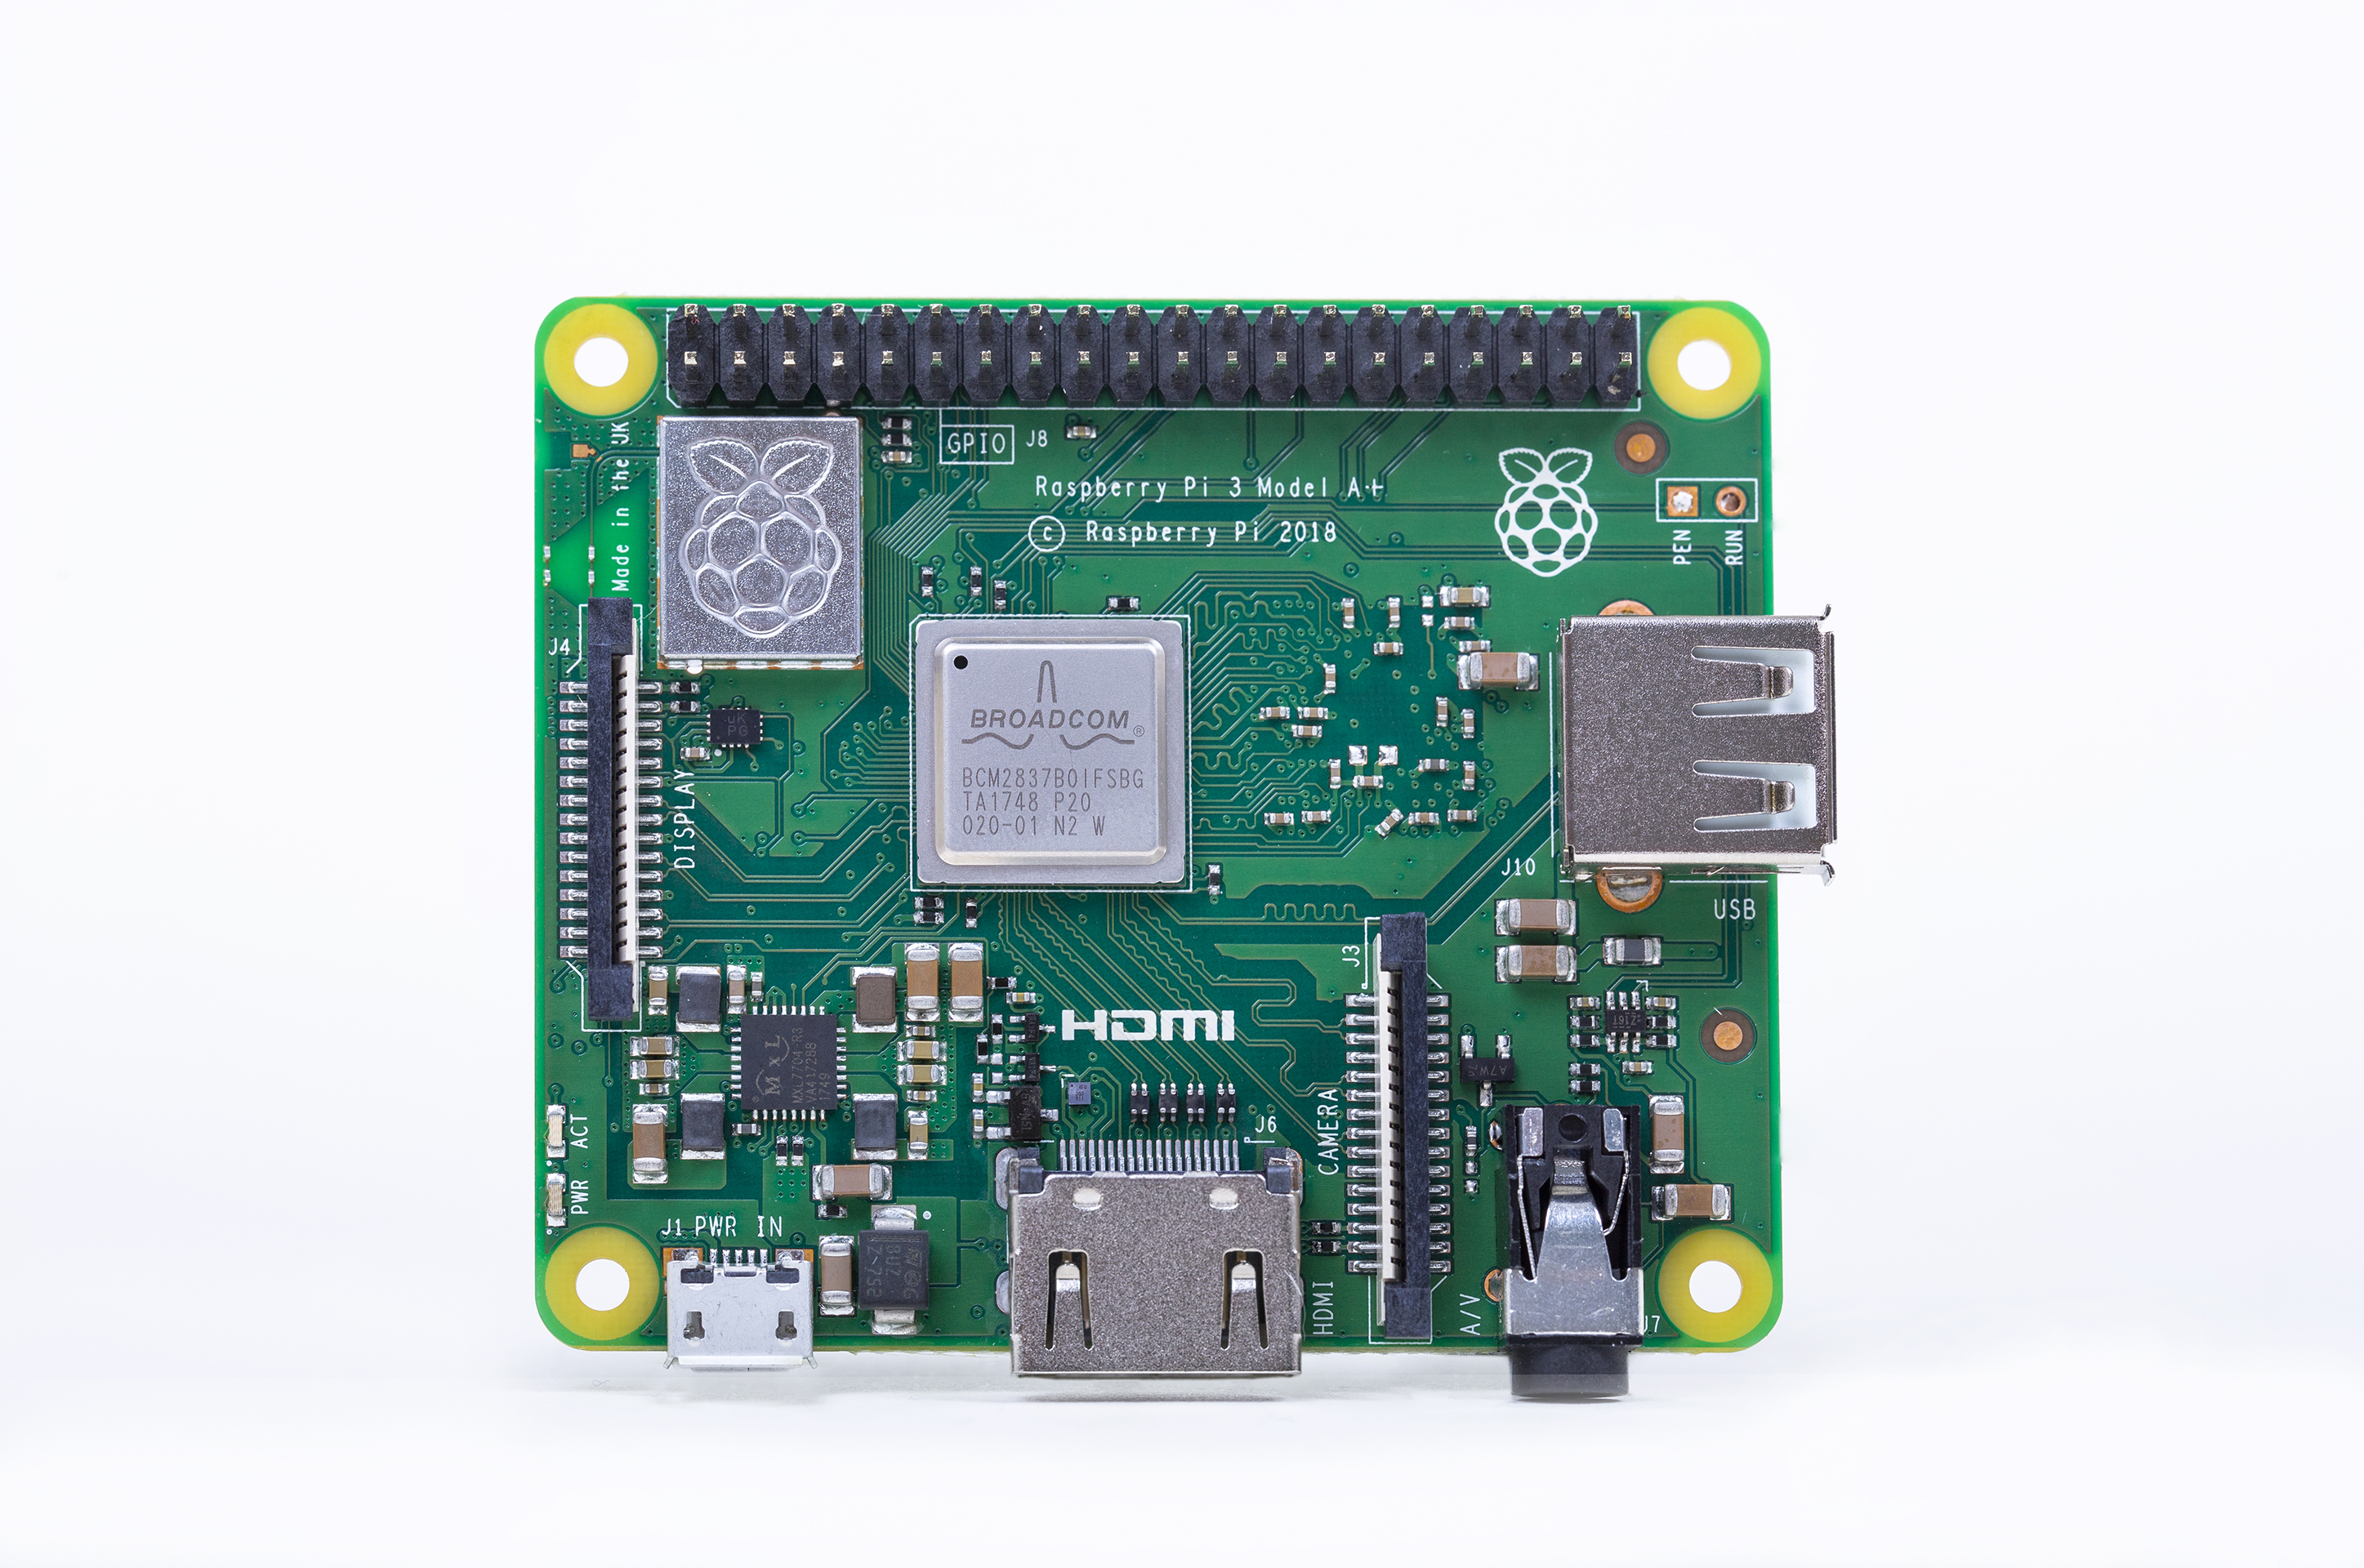 Slightly Smaller, Just as Powerful: Raspberry Pi Launches Pi 3 Model A+